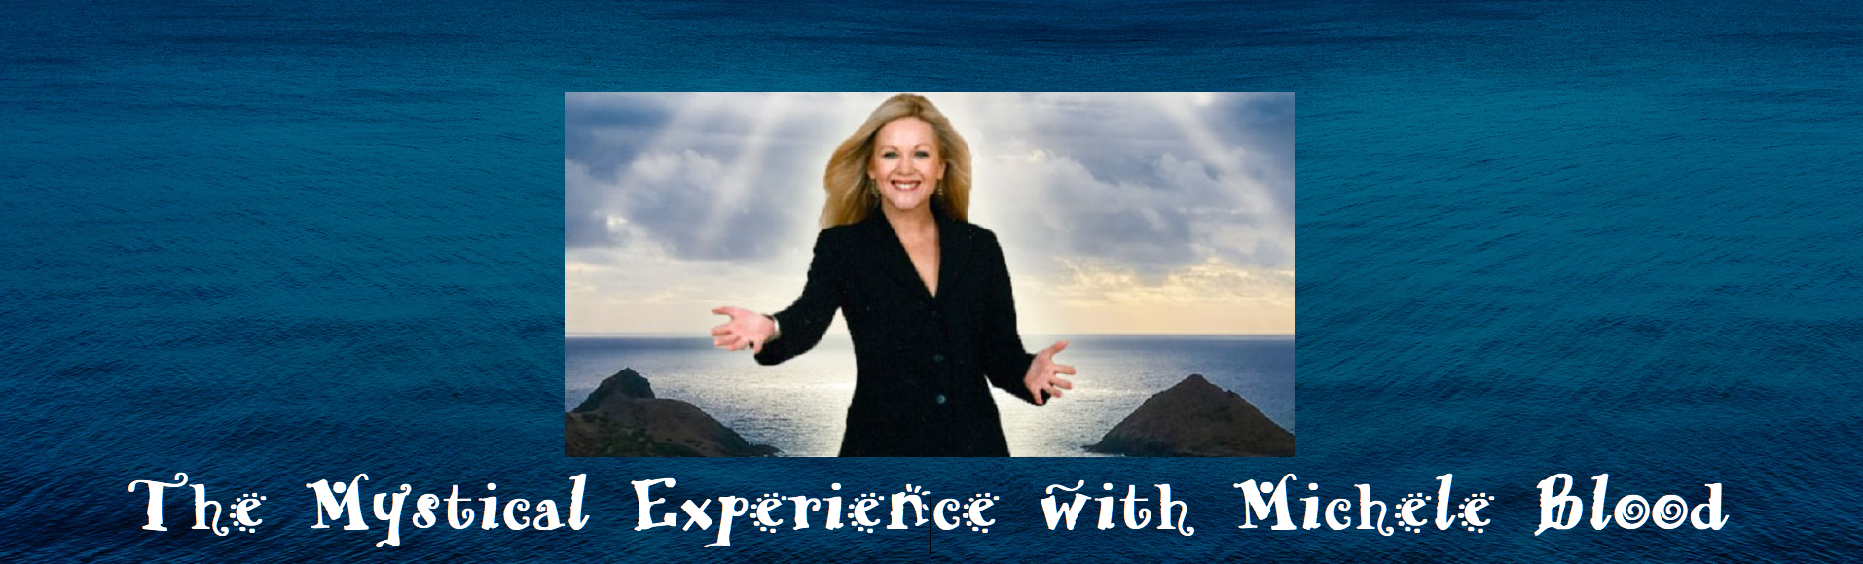 Michele Blood . The Mystical Experience . Cosmic Wisdom . HoustonSpirituality.com